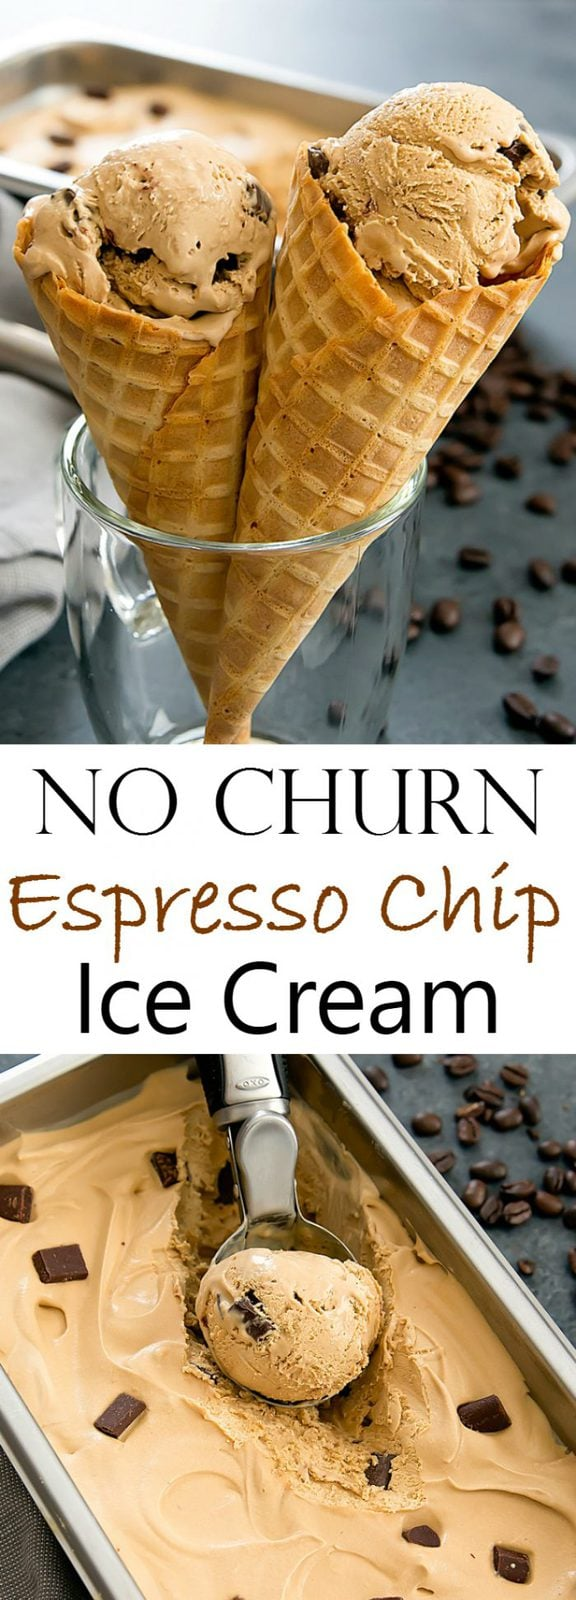 No Churn Espresso Chocolate Chip Ice Cream